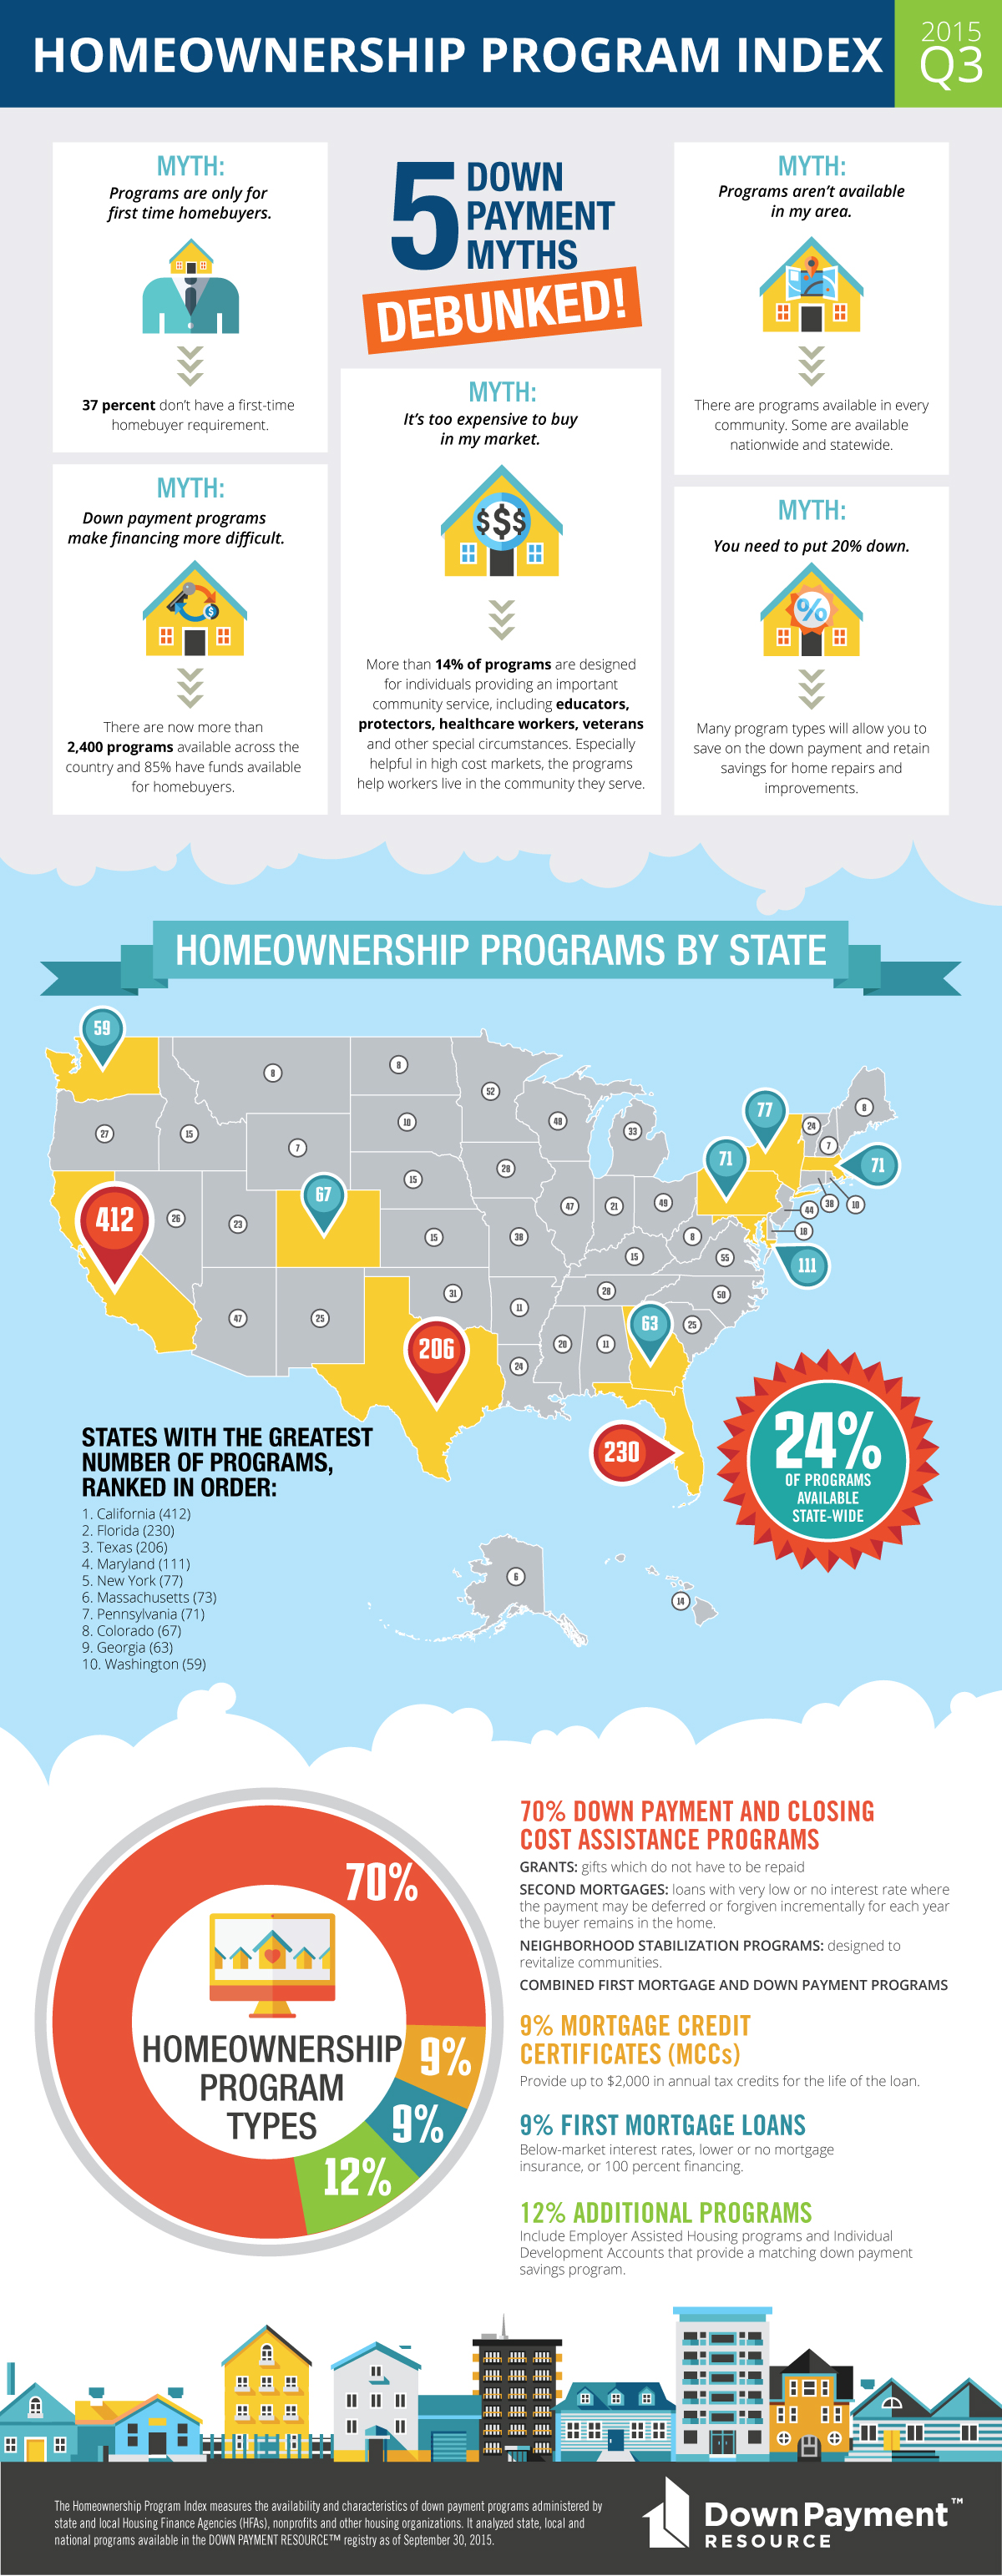 Homeownership Program Index | - Page 5 of 7 | Down Payment